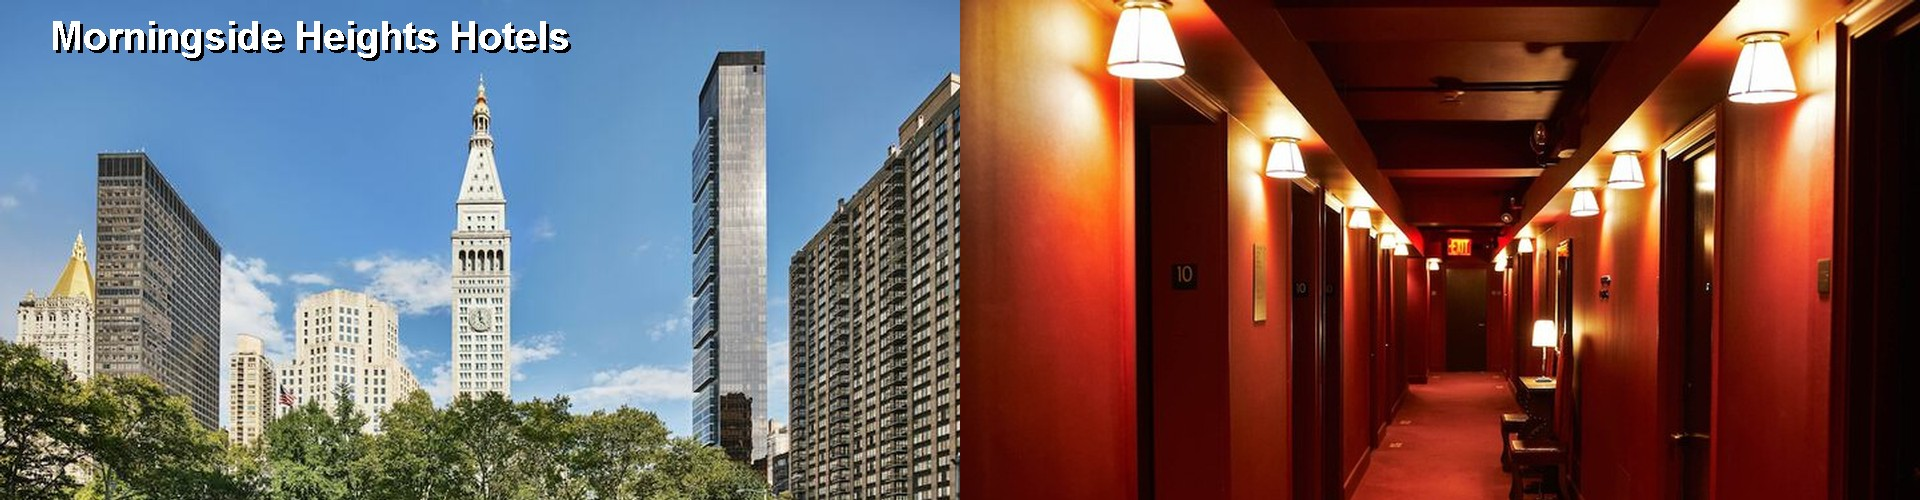 5 Best Hotels near Morningside Heights